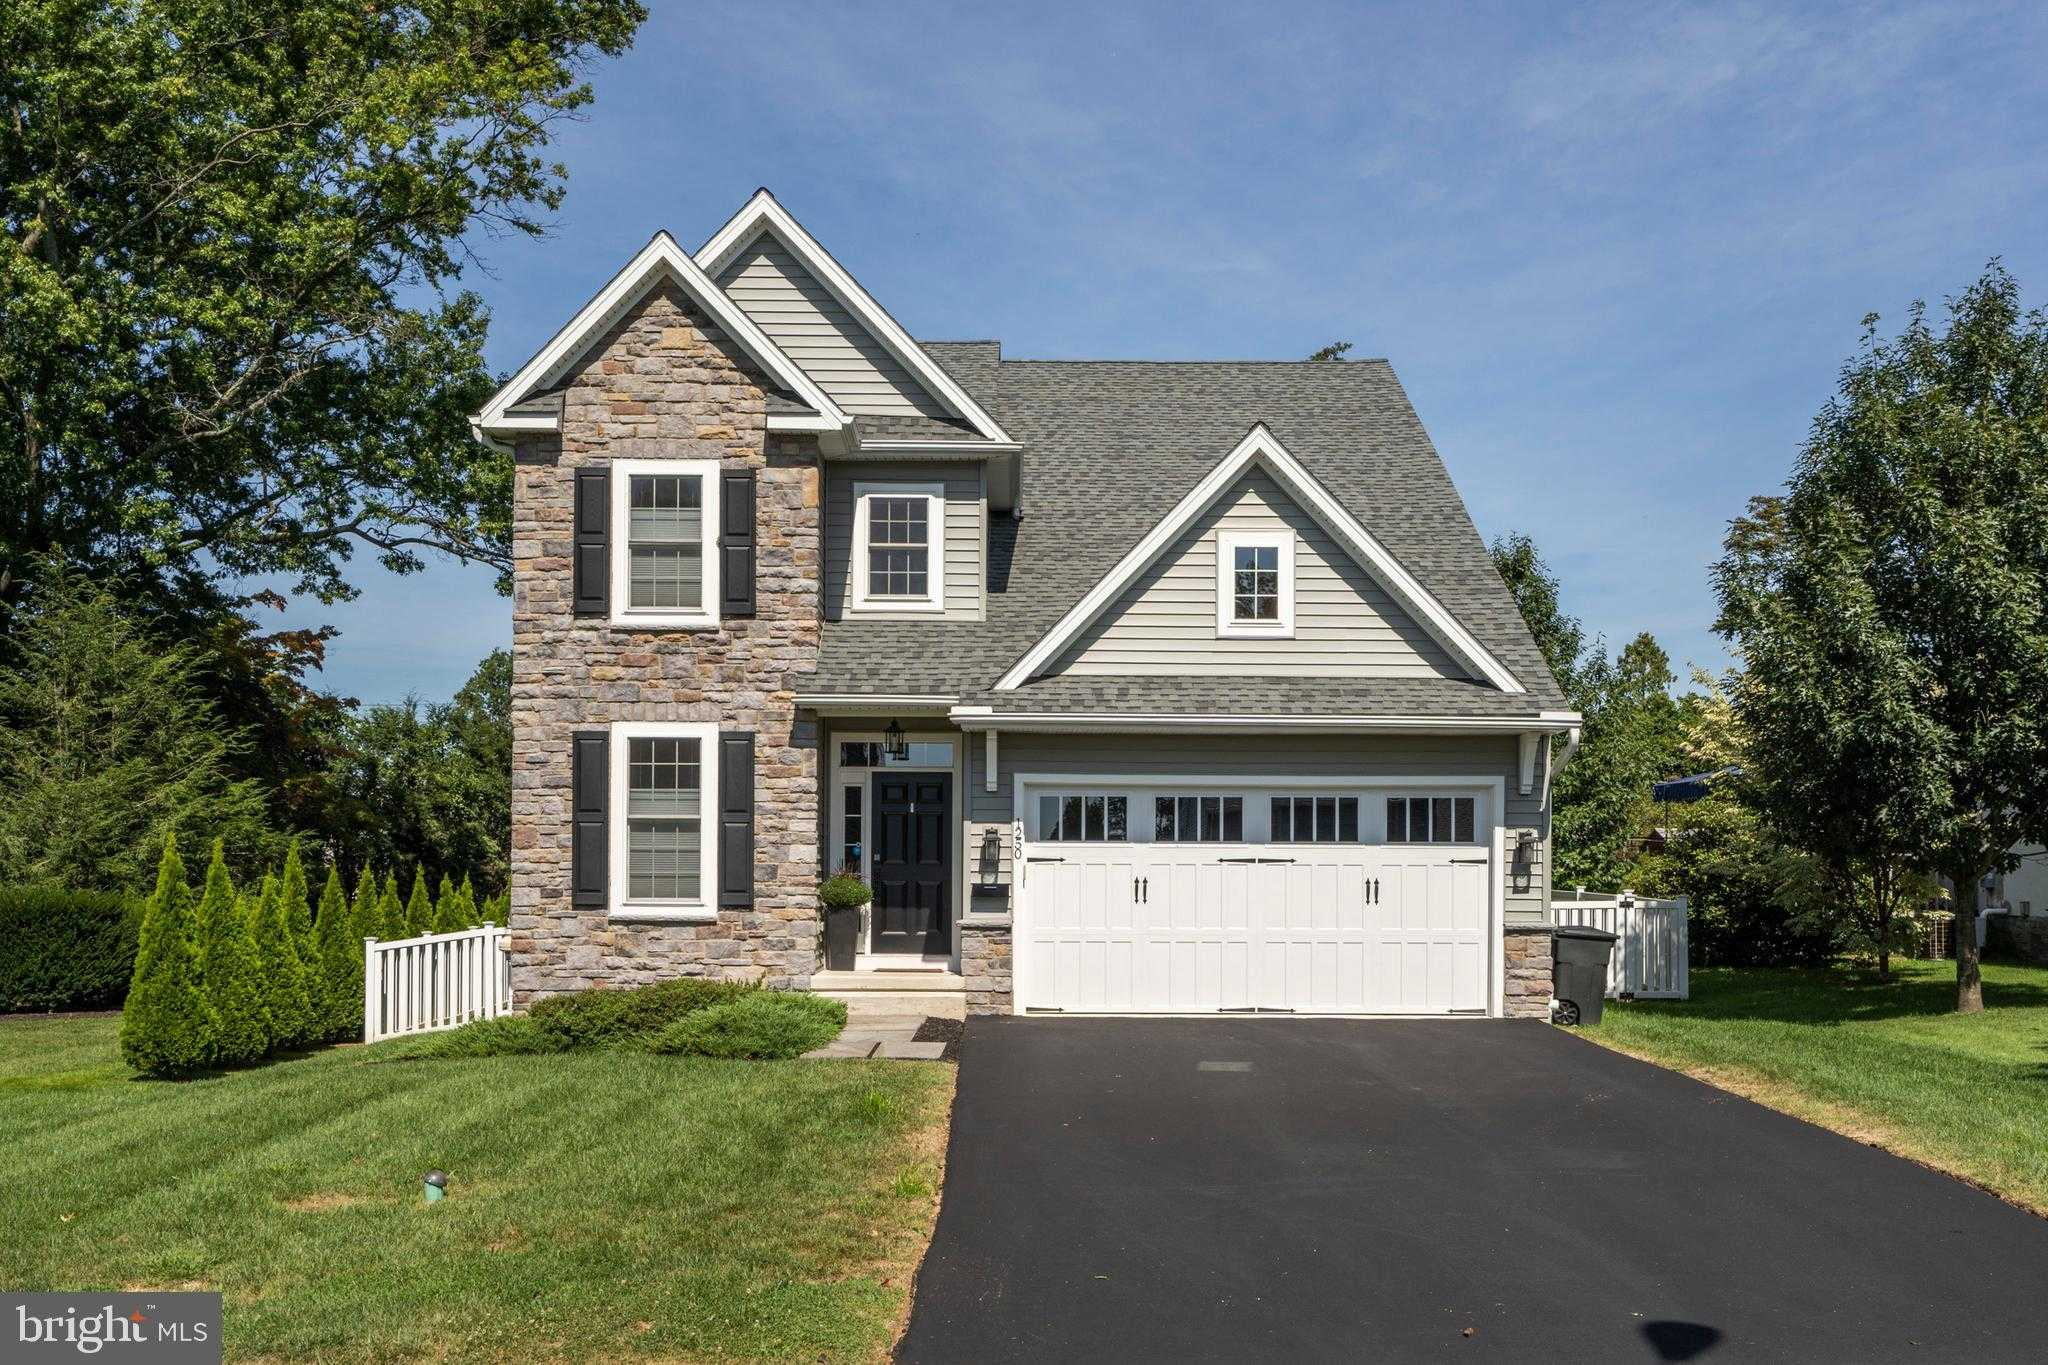 $699,000 - 5Br/5Ba -  for Sale in Pilgrim Gdns, Havertown